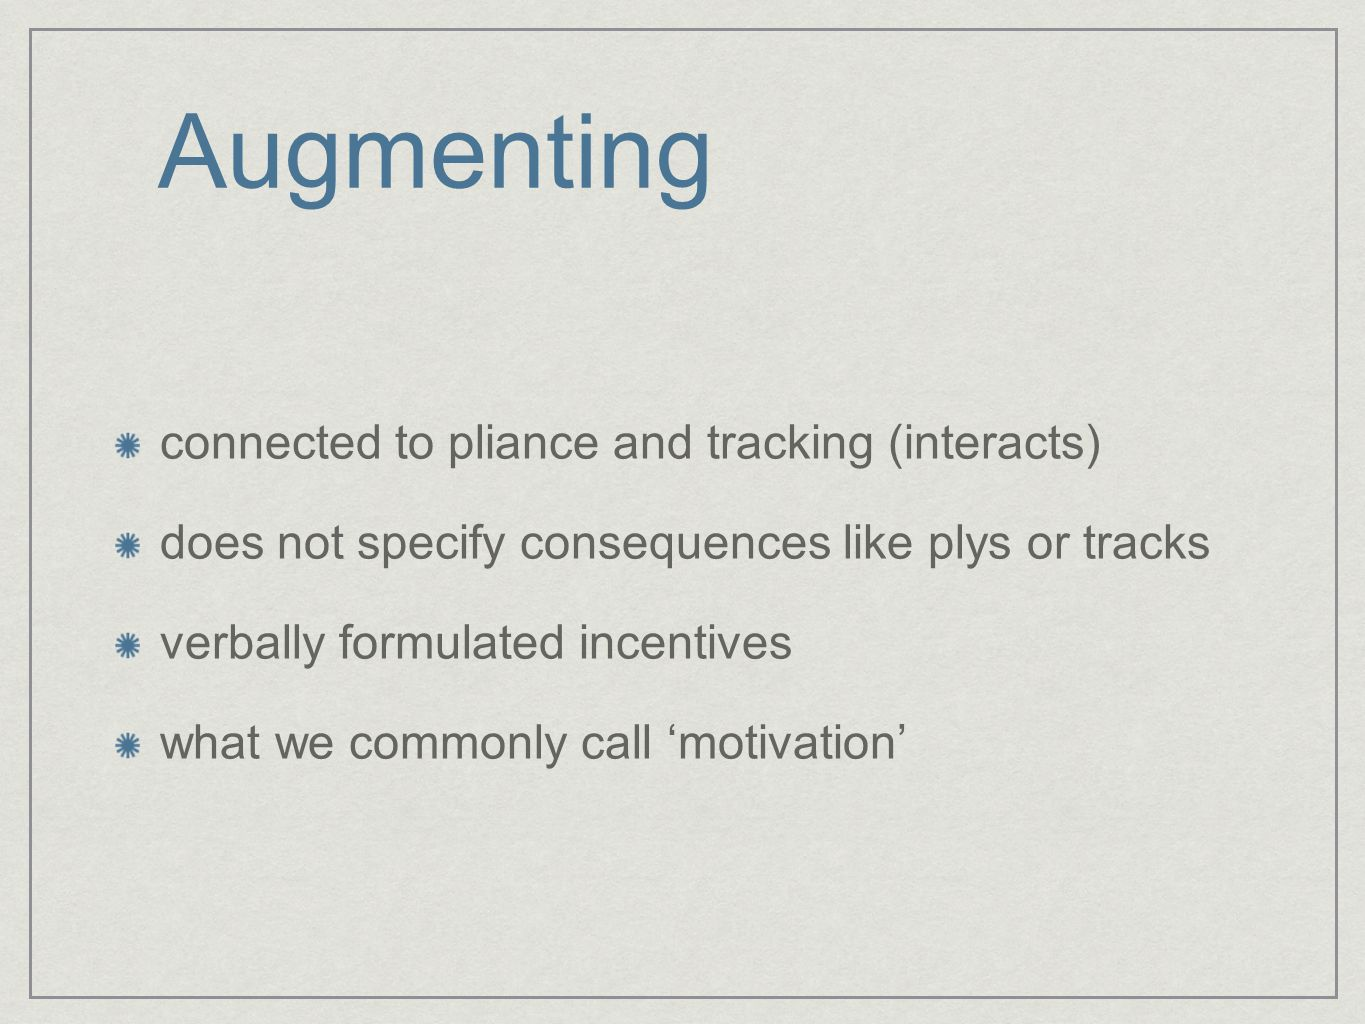 Augmenting connected to pliance and tracking (interacts) does not specify consequences like plys or tracks verbally formulated incentives what we commonly call 'motivation'